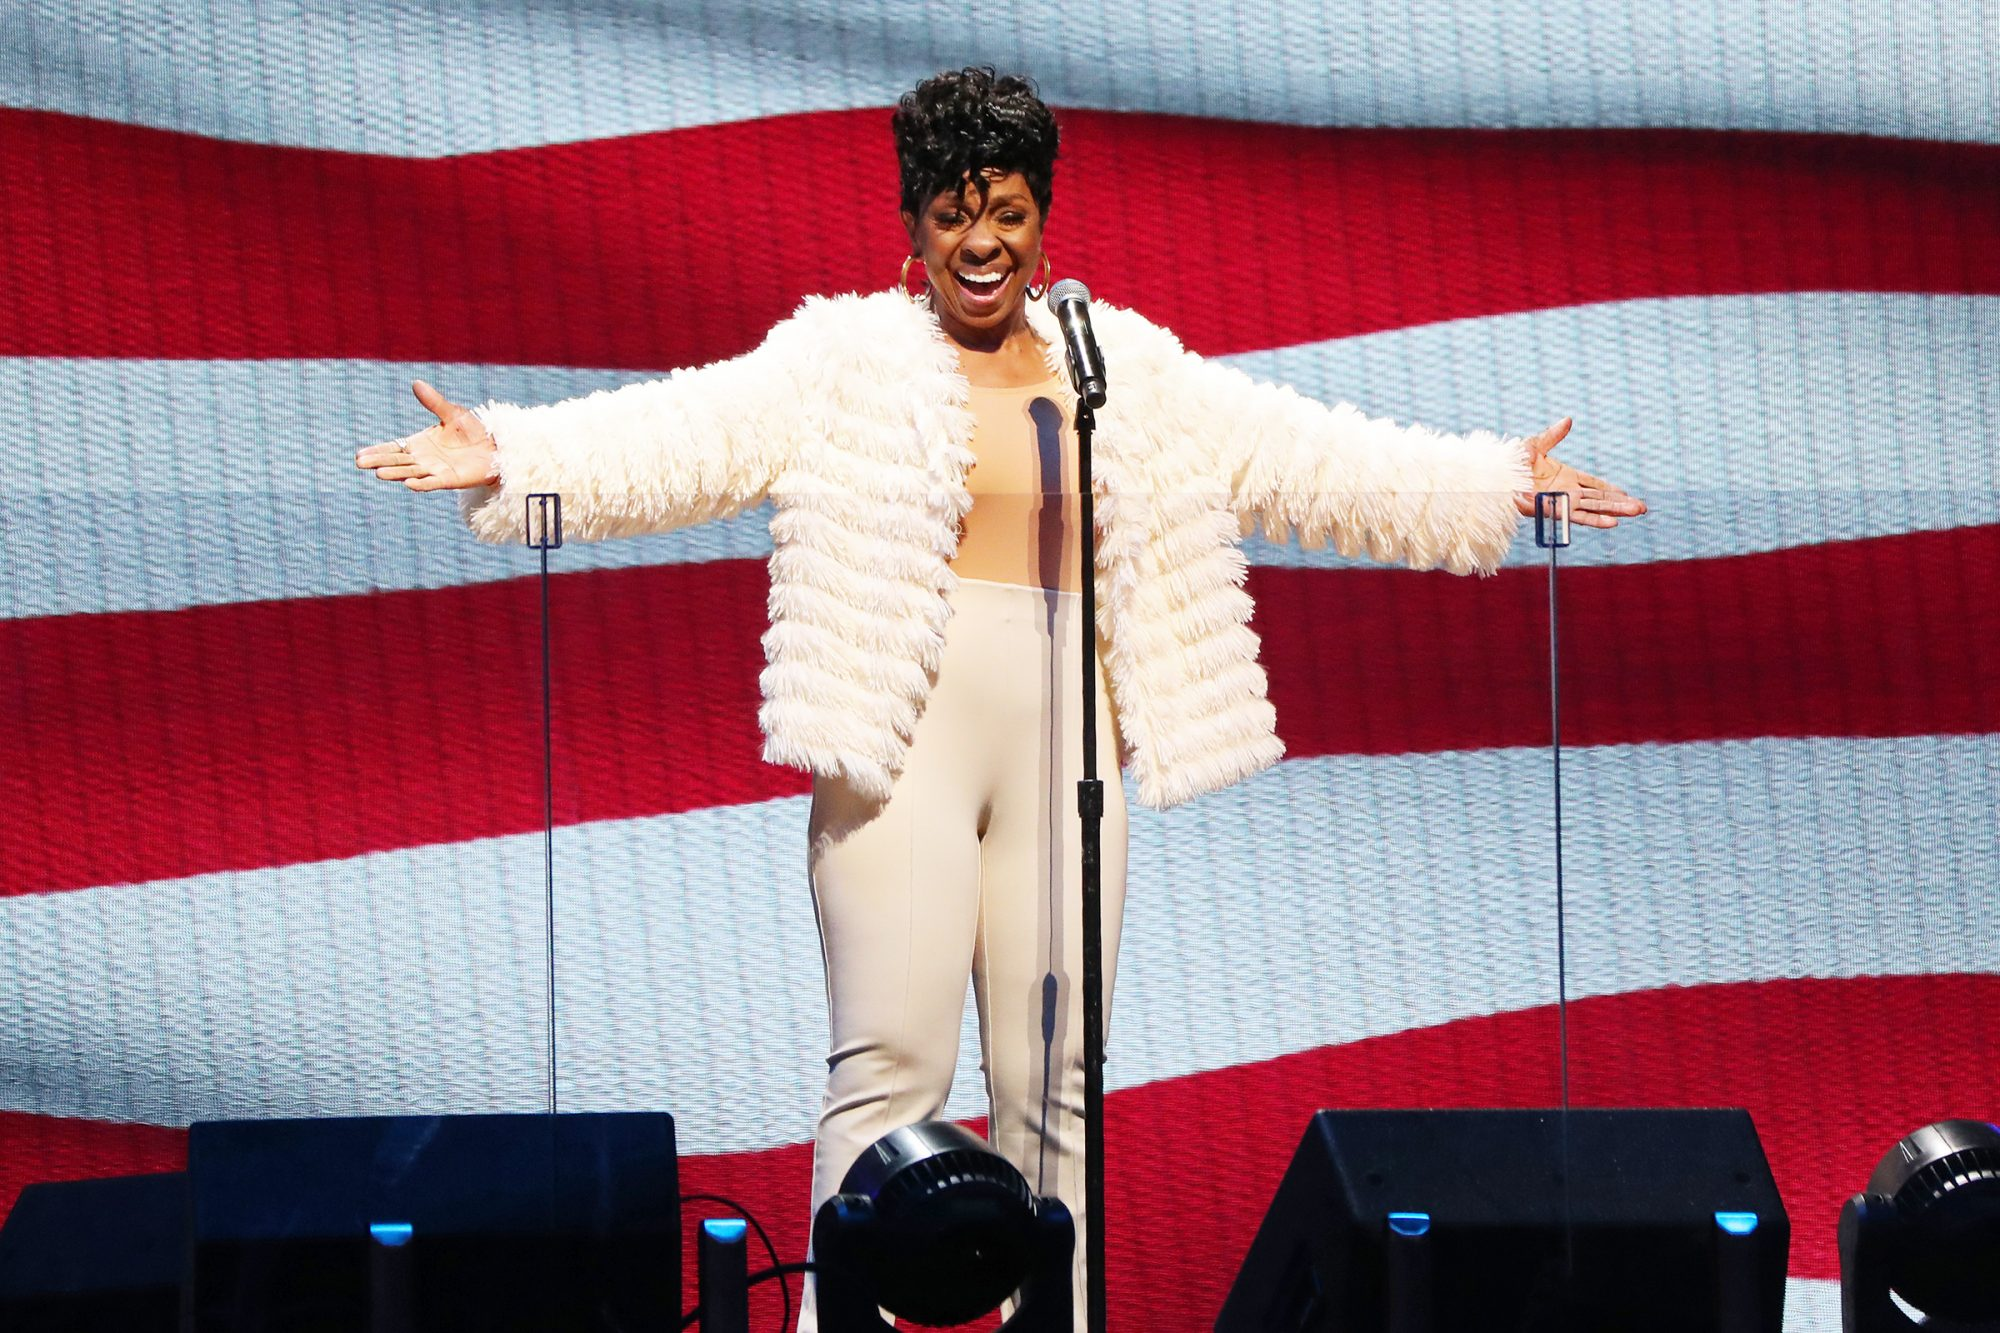 Gladys Knight performs the National Anthem before the 70th NBA All Star Game as part of 2021 NBA All Star Weekend on March 7, 2021 at State Farm Arena